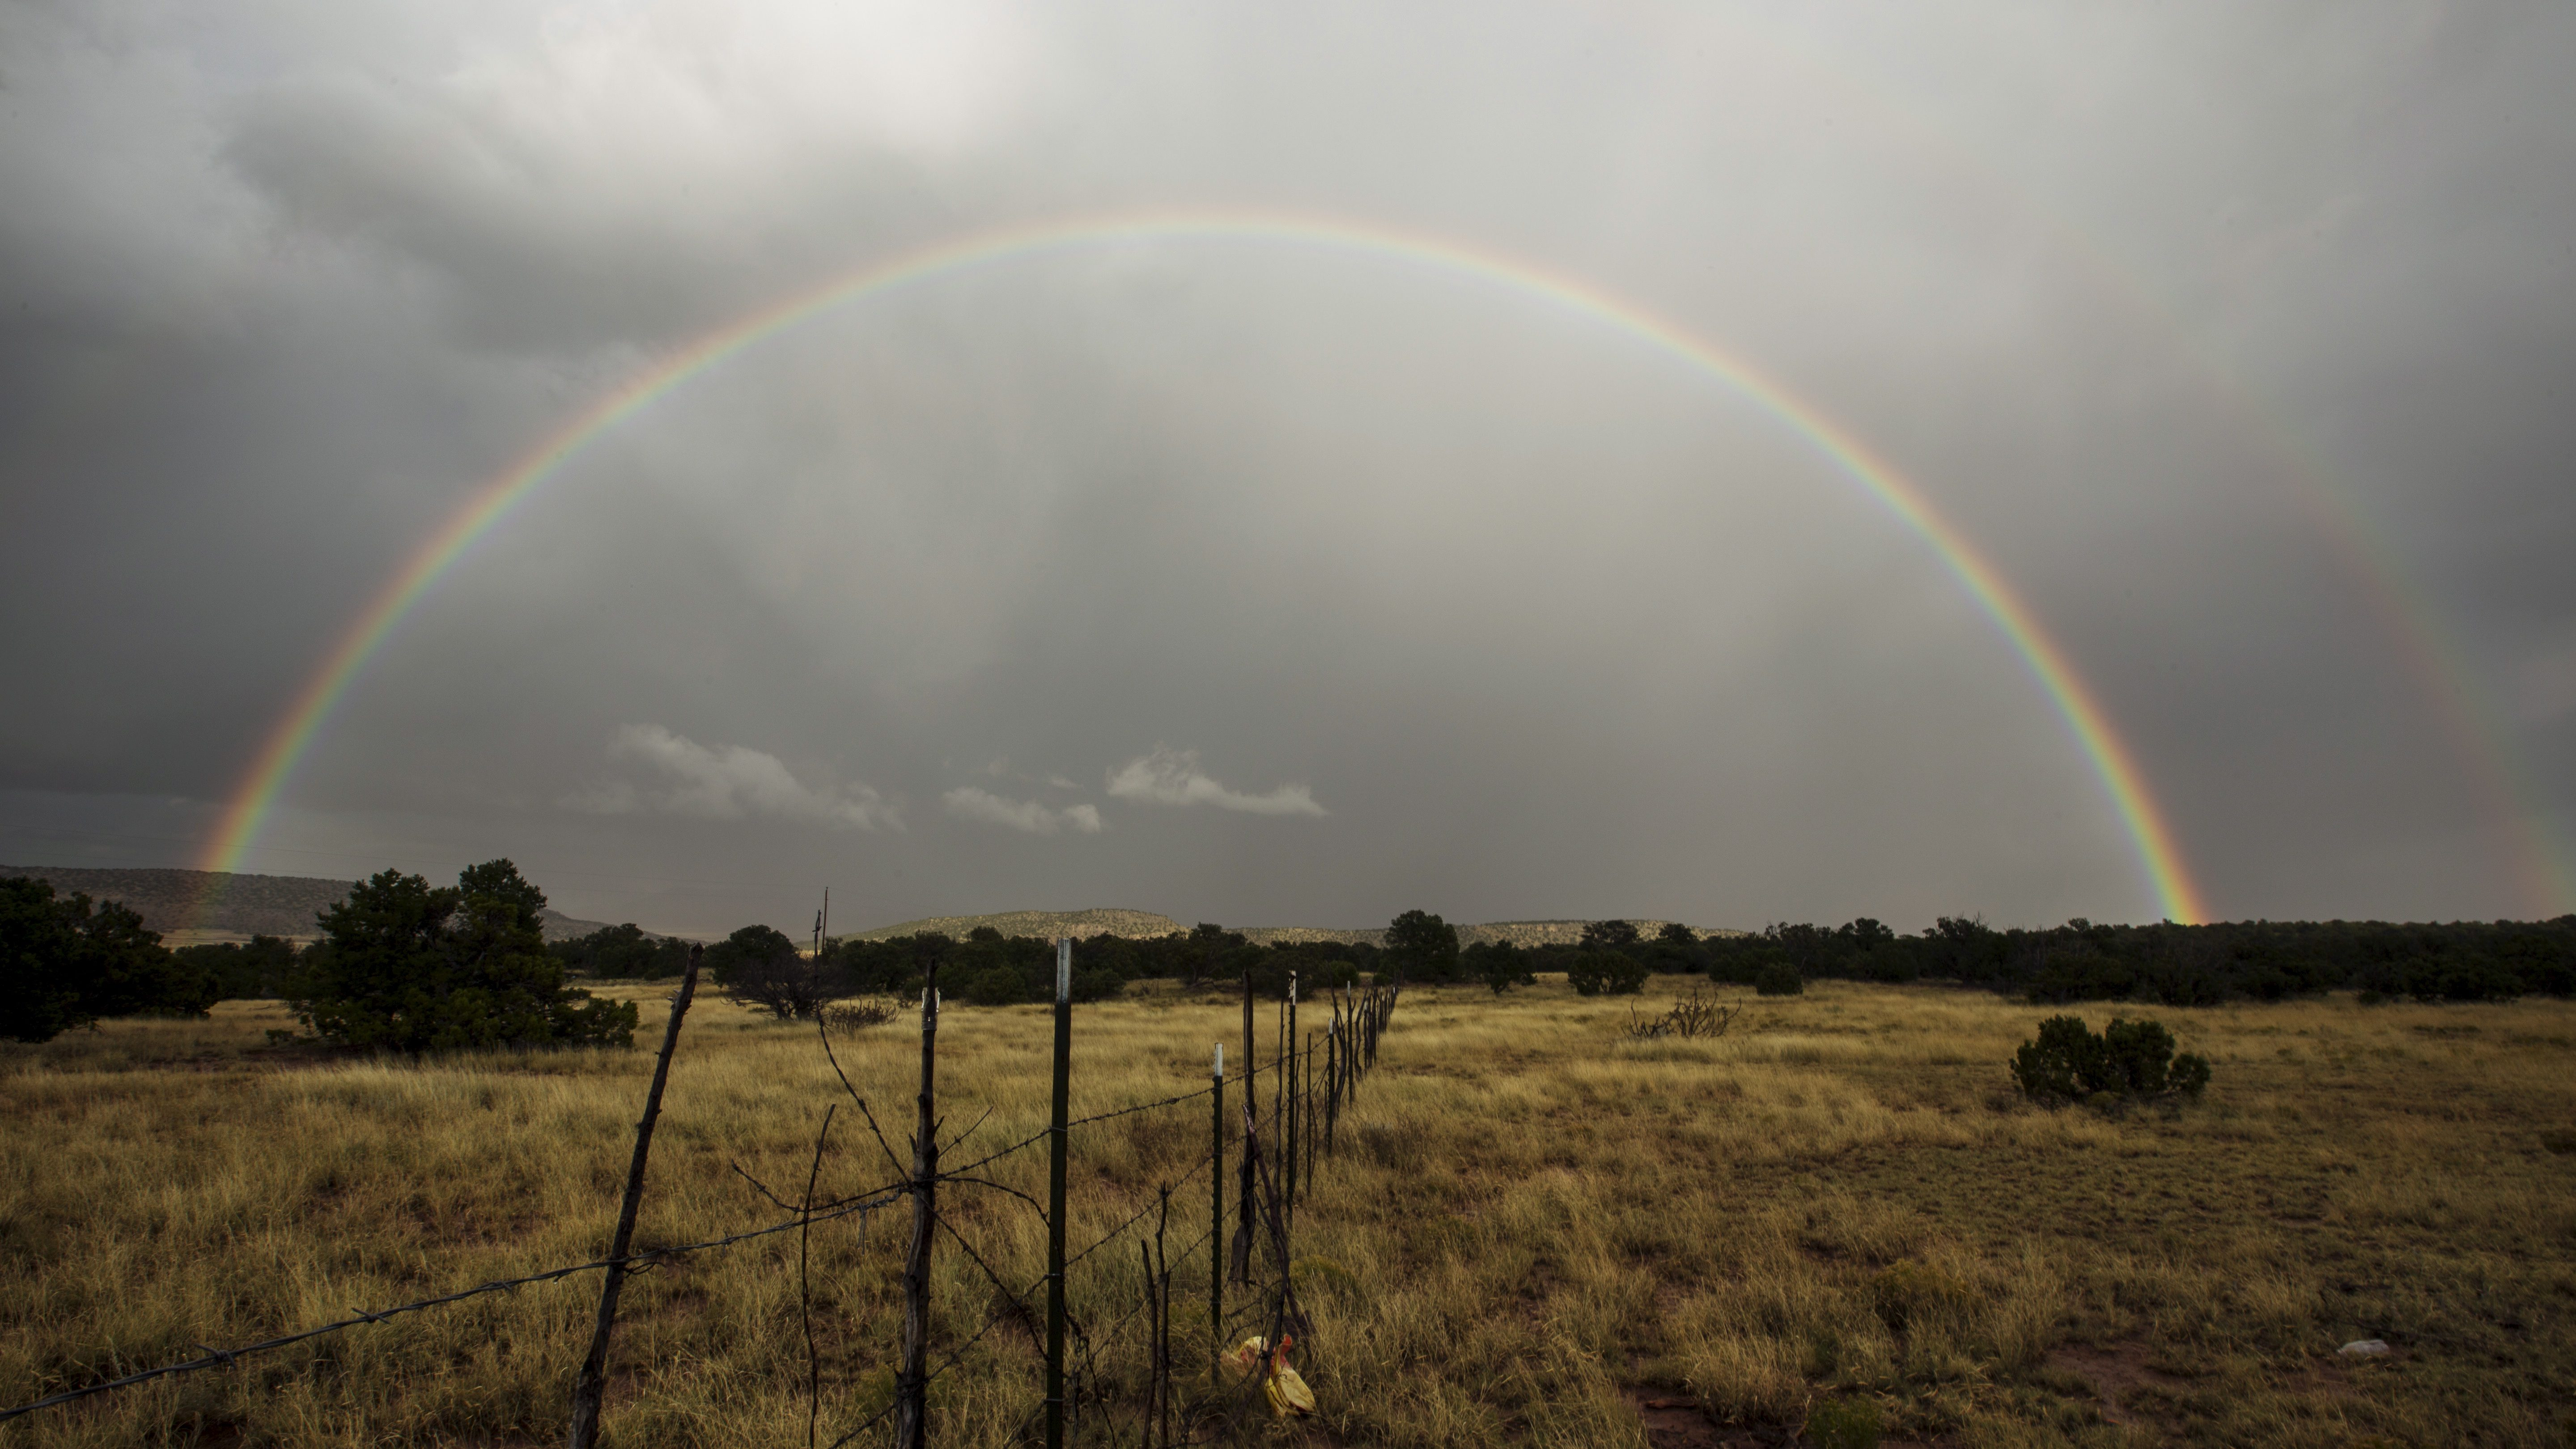 A rainbow forms after a passing rain shower near Grants, New Mexico, October 5, 2015.    - GF10000233617